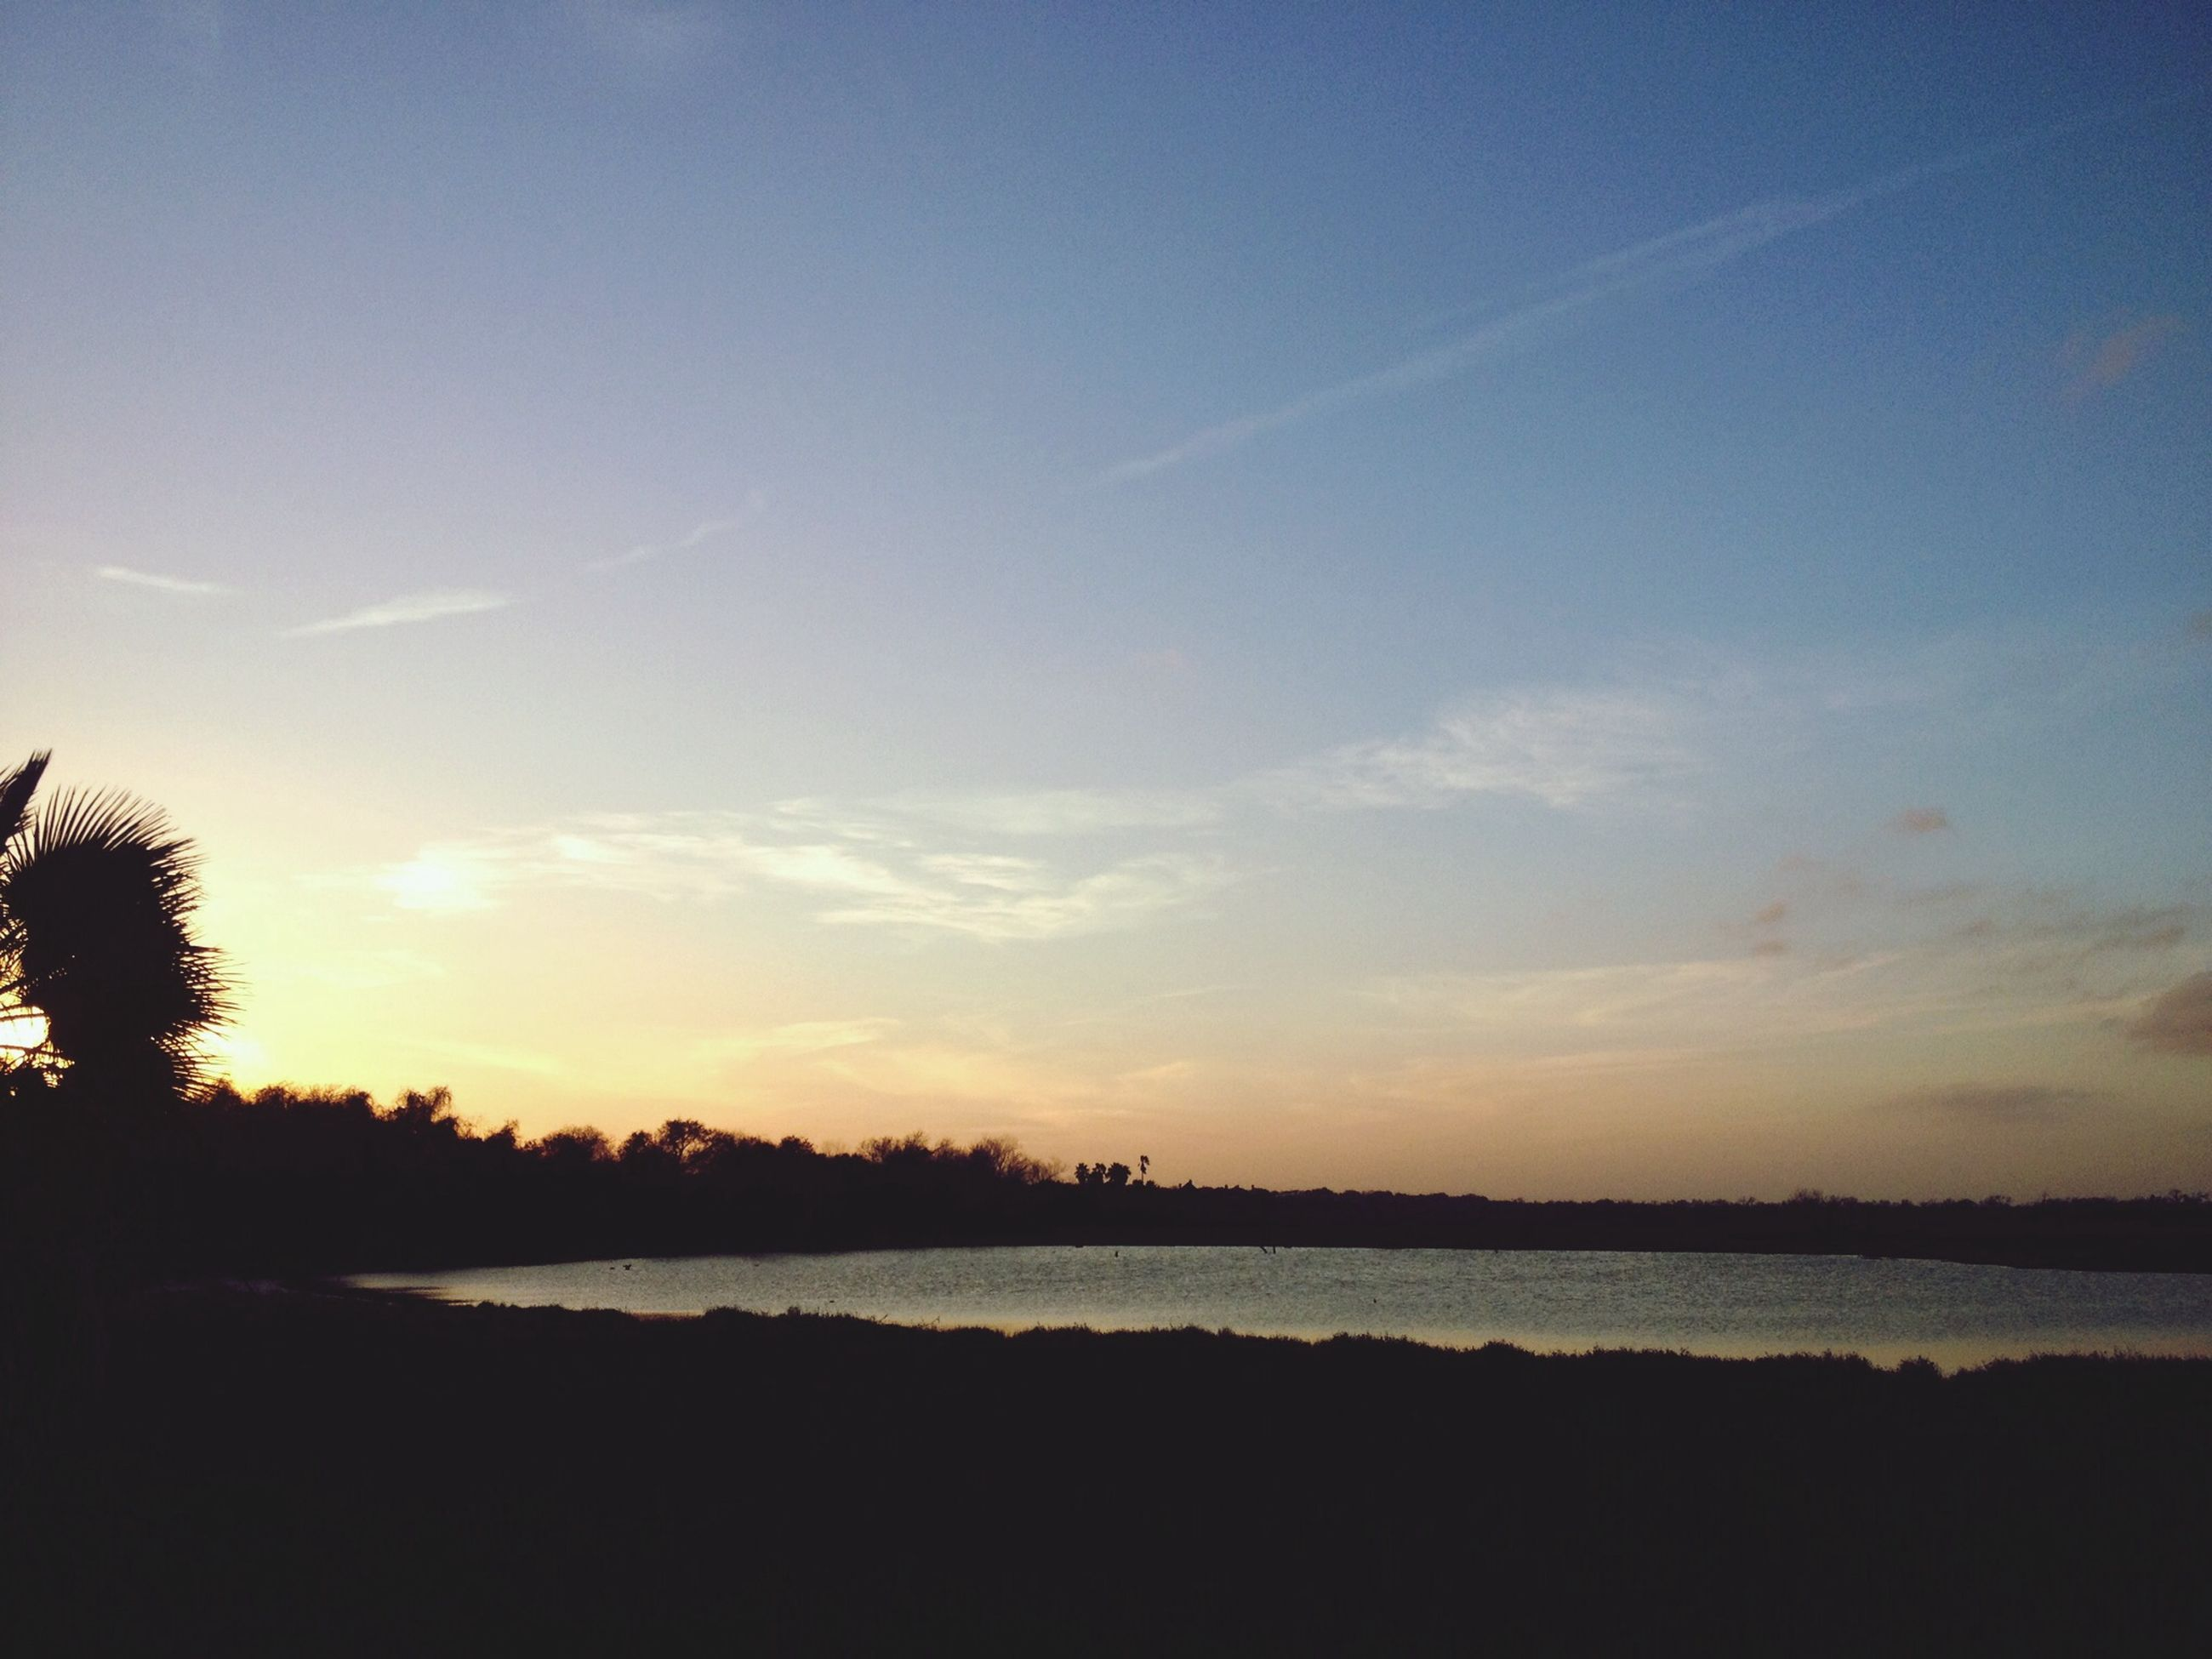 tranquil scene, tranquility, water, scenics, sunset, beauty in nature, silhouette, sky, tree, nature, idyllic, lake, sea, reflection, blue, calm, non-urban scene, outdoors, landscape, beach